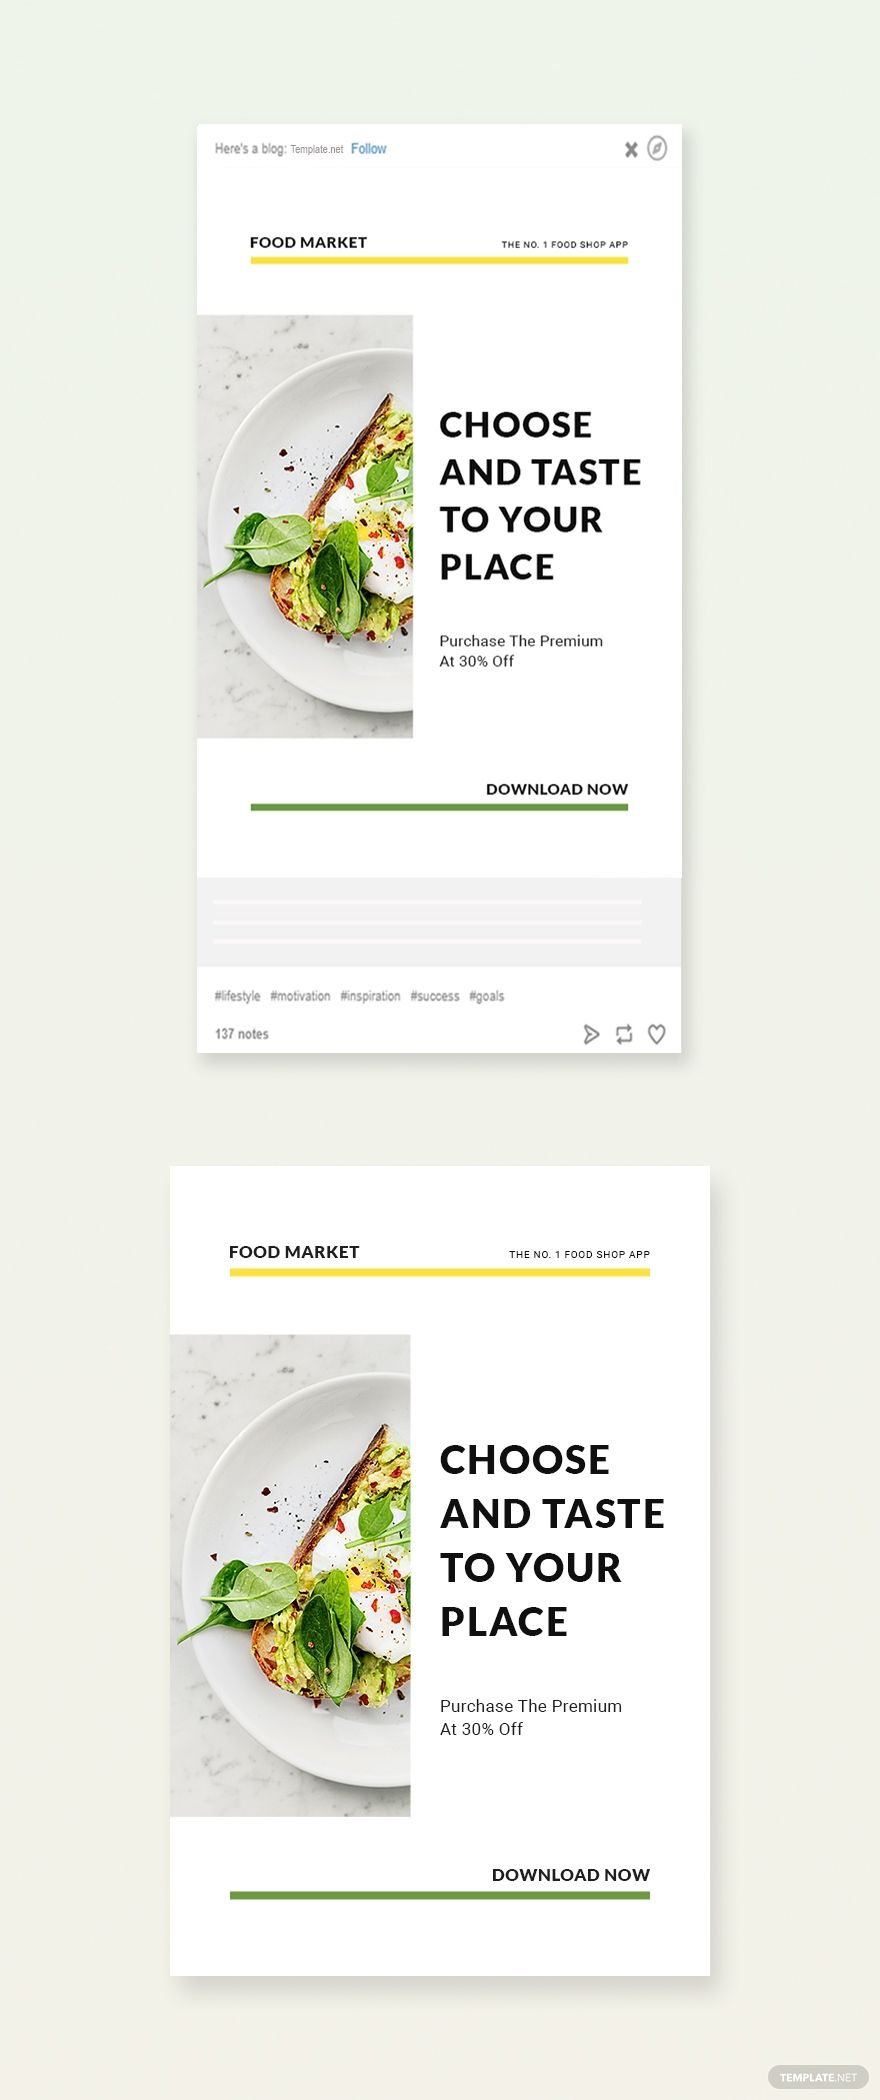 Free Food Market App Promotion Tumblr Post Template In 2020 App